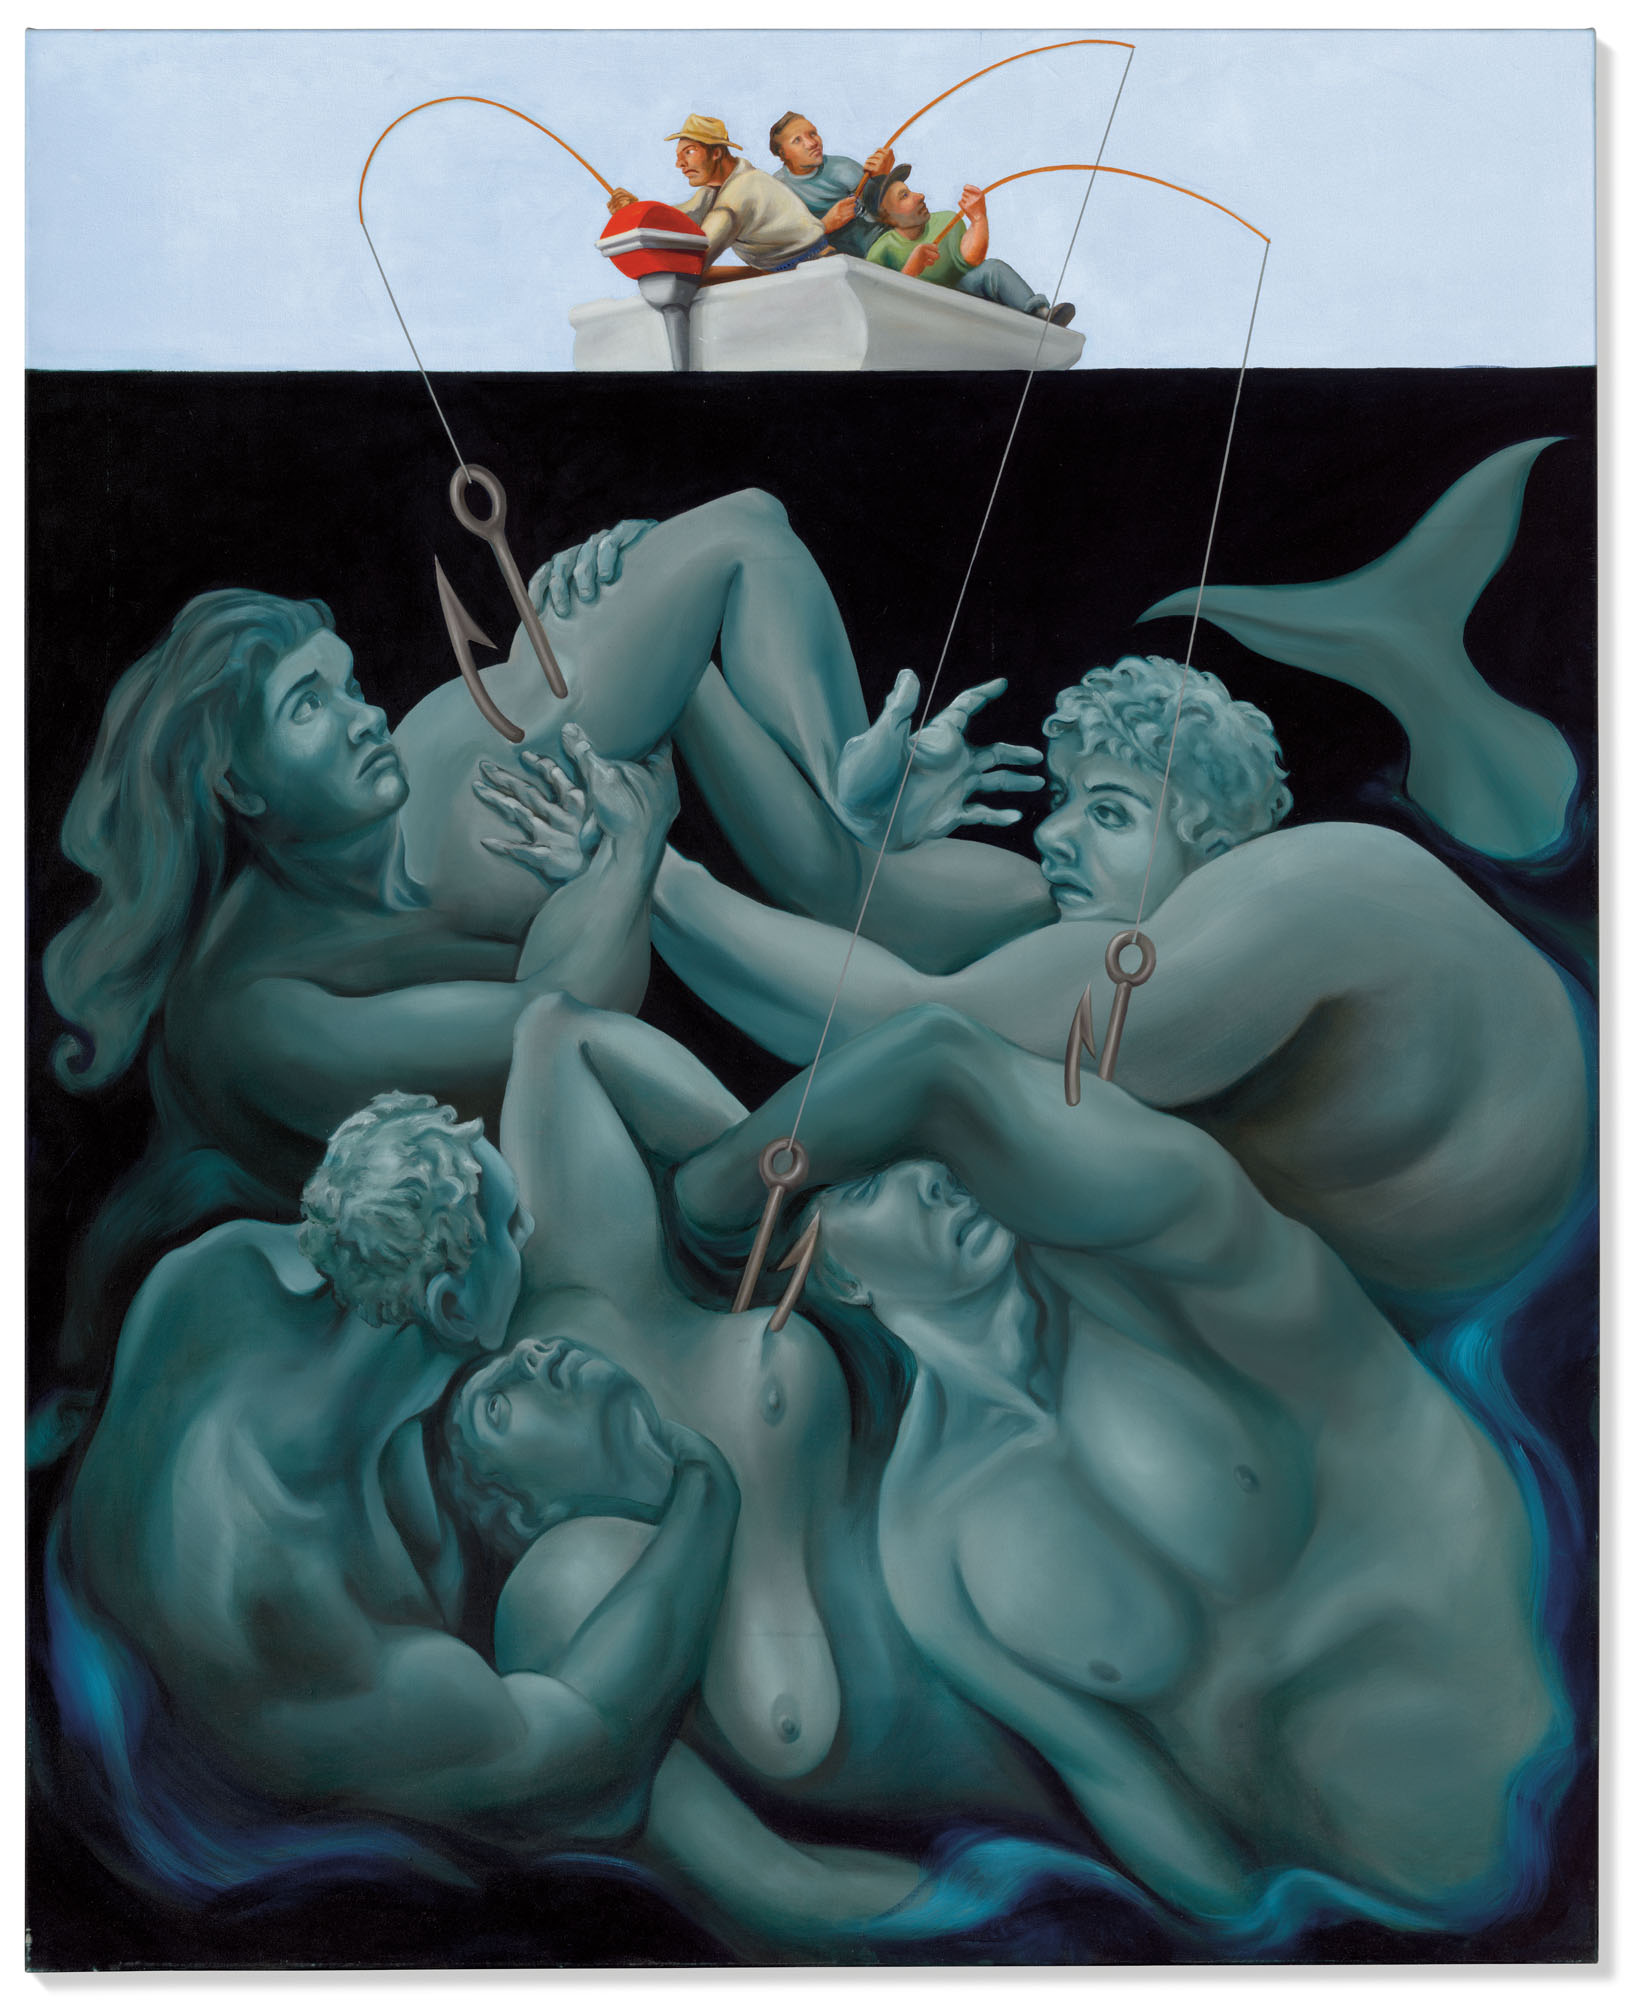 Nicole Eisenman (b. 1965), Mermaid Catch, 1996. Oil on canvas. 77½ x 63 in (196.8 x 160 cm). Estimate £400,000-600,000. Offered in Post-War and Contemporary Art Day Sale on 25 March 2021 at Christies in London